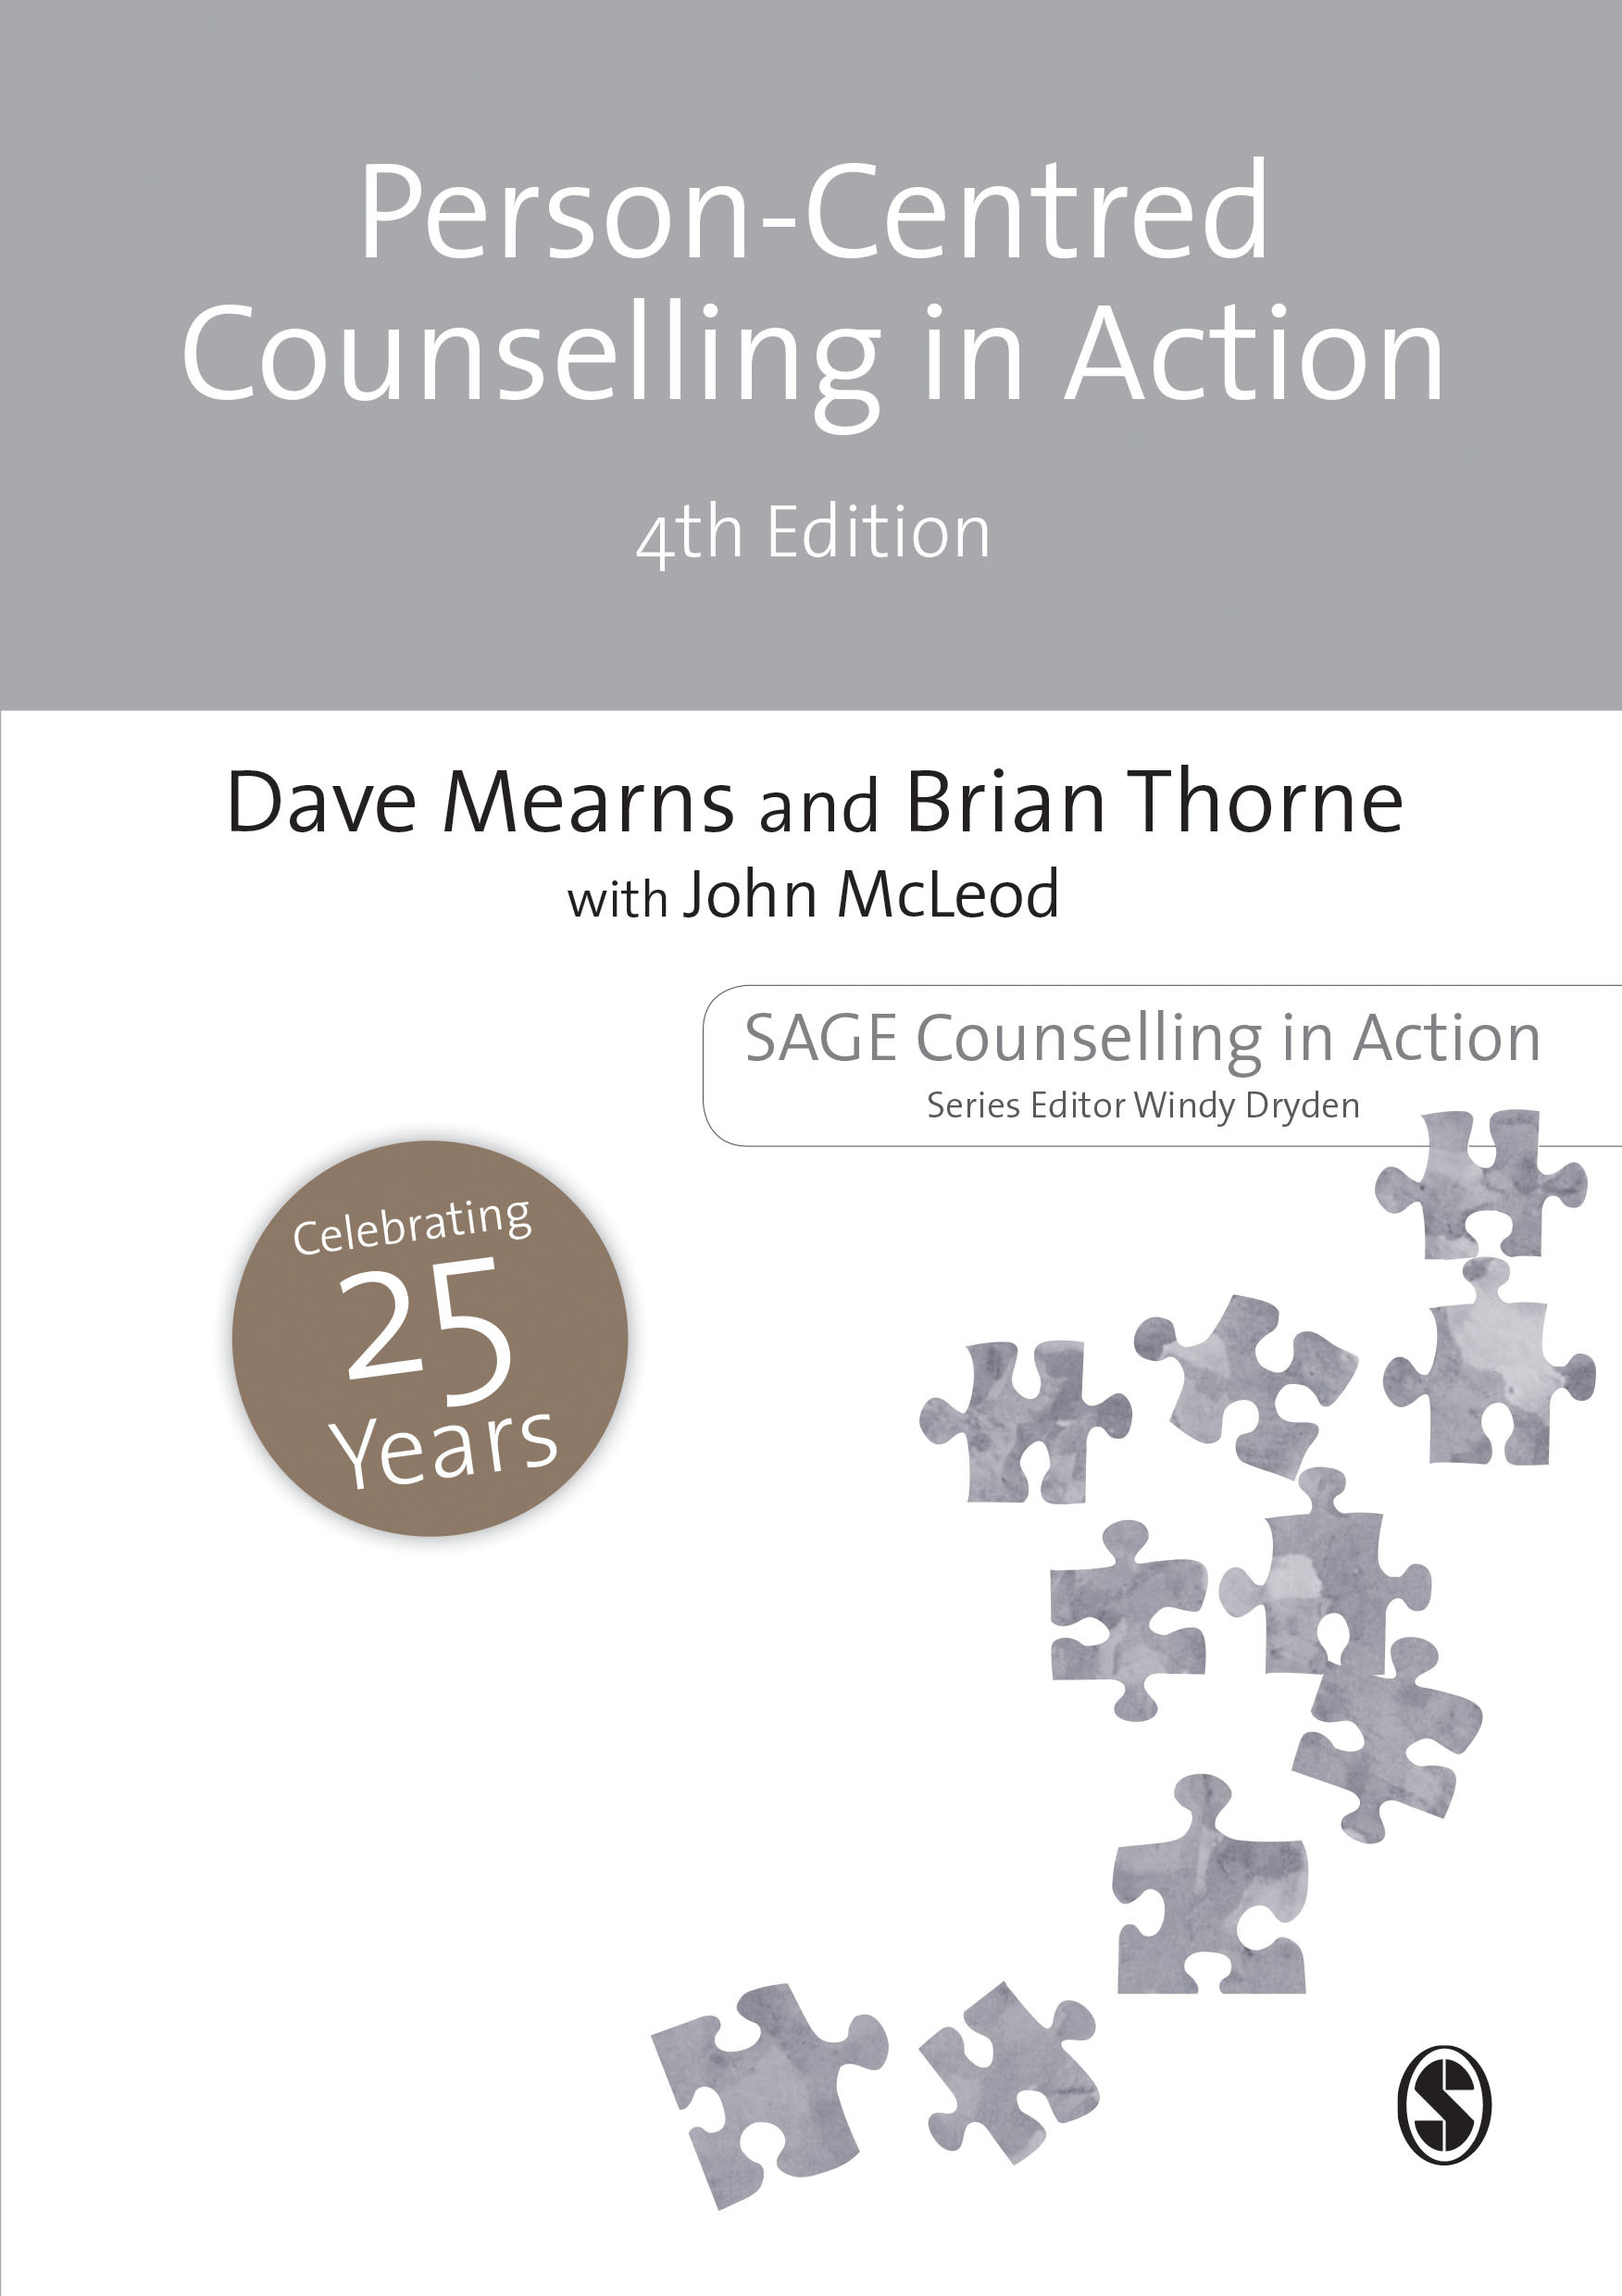 Person-Centred Counselling in Action book cover image